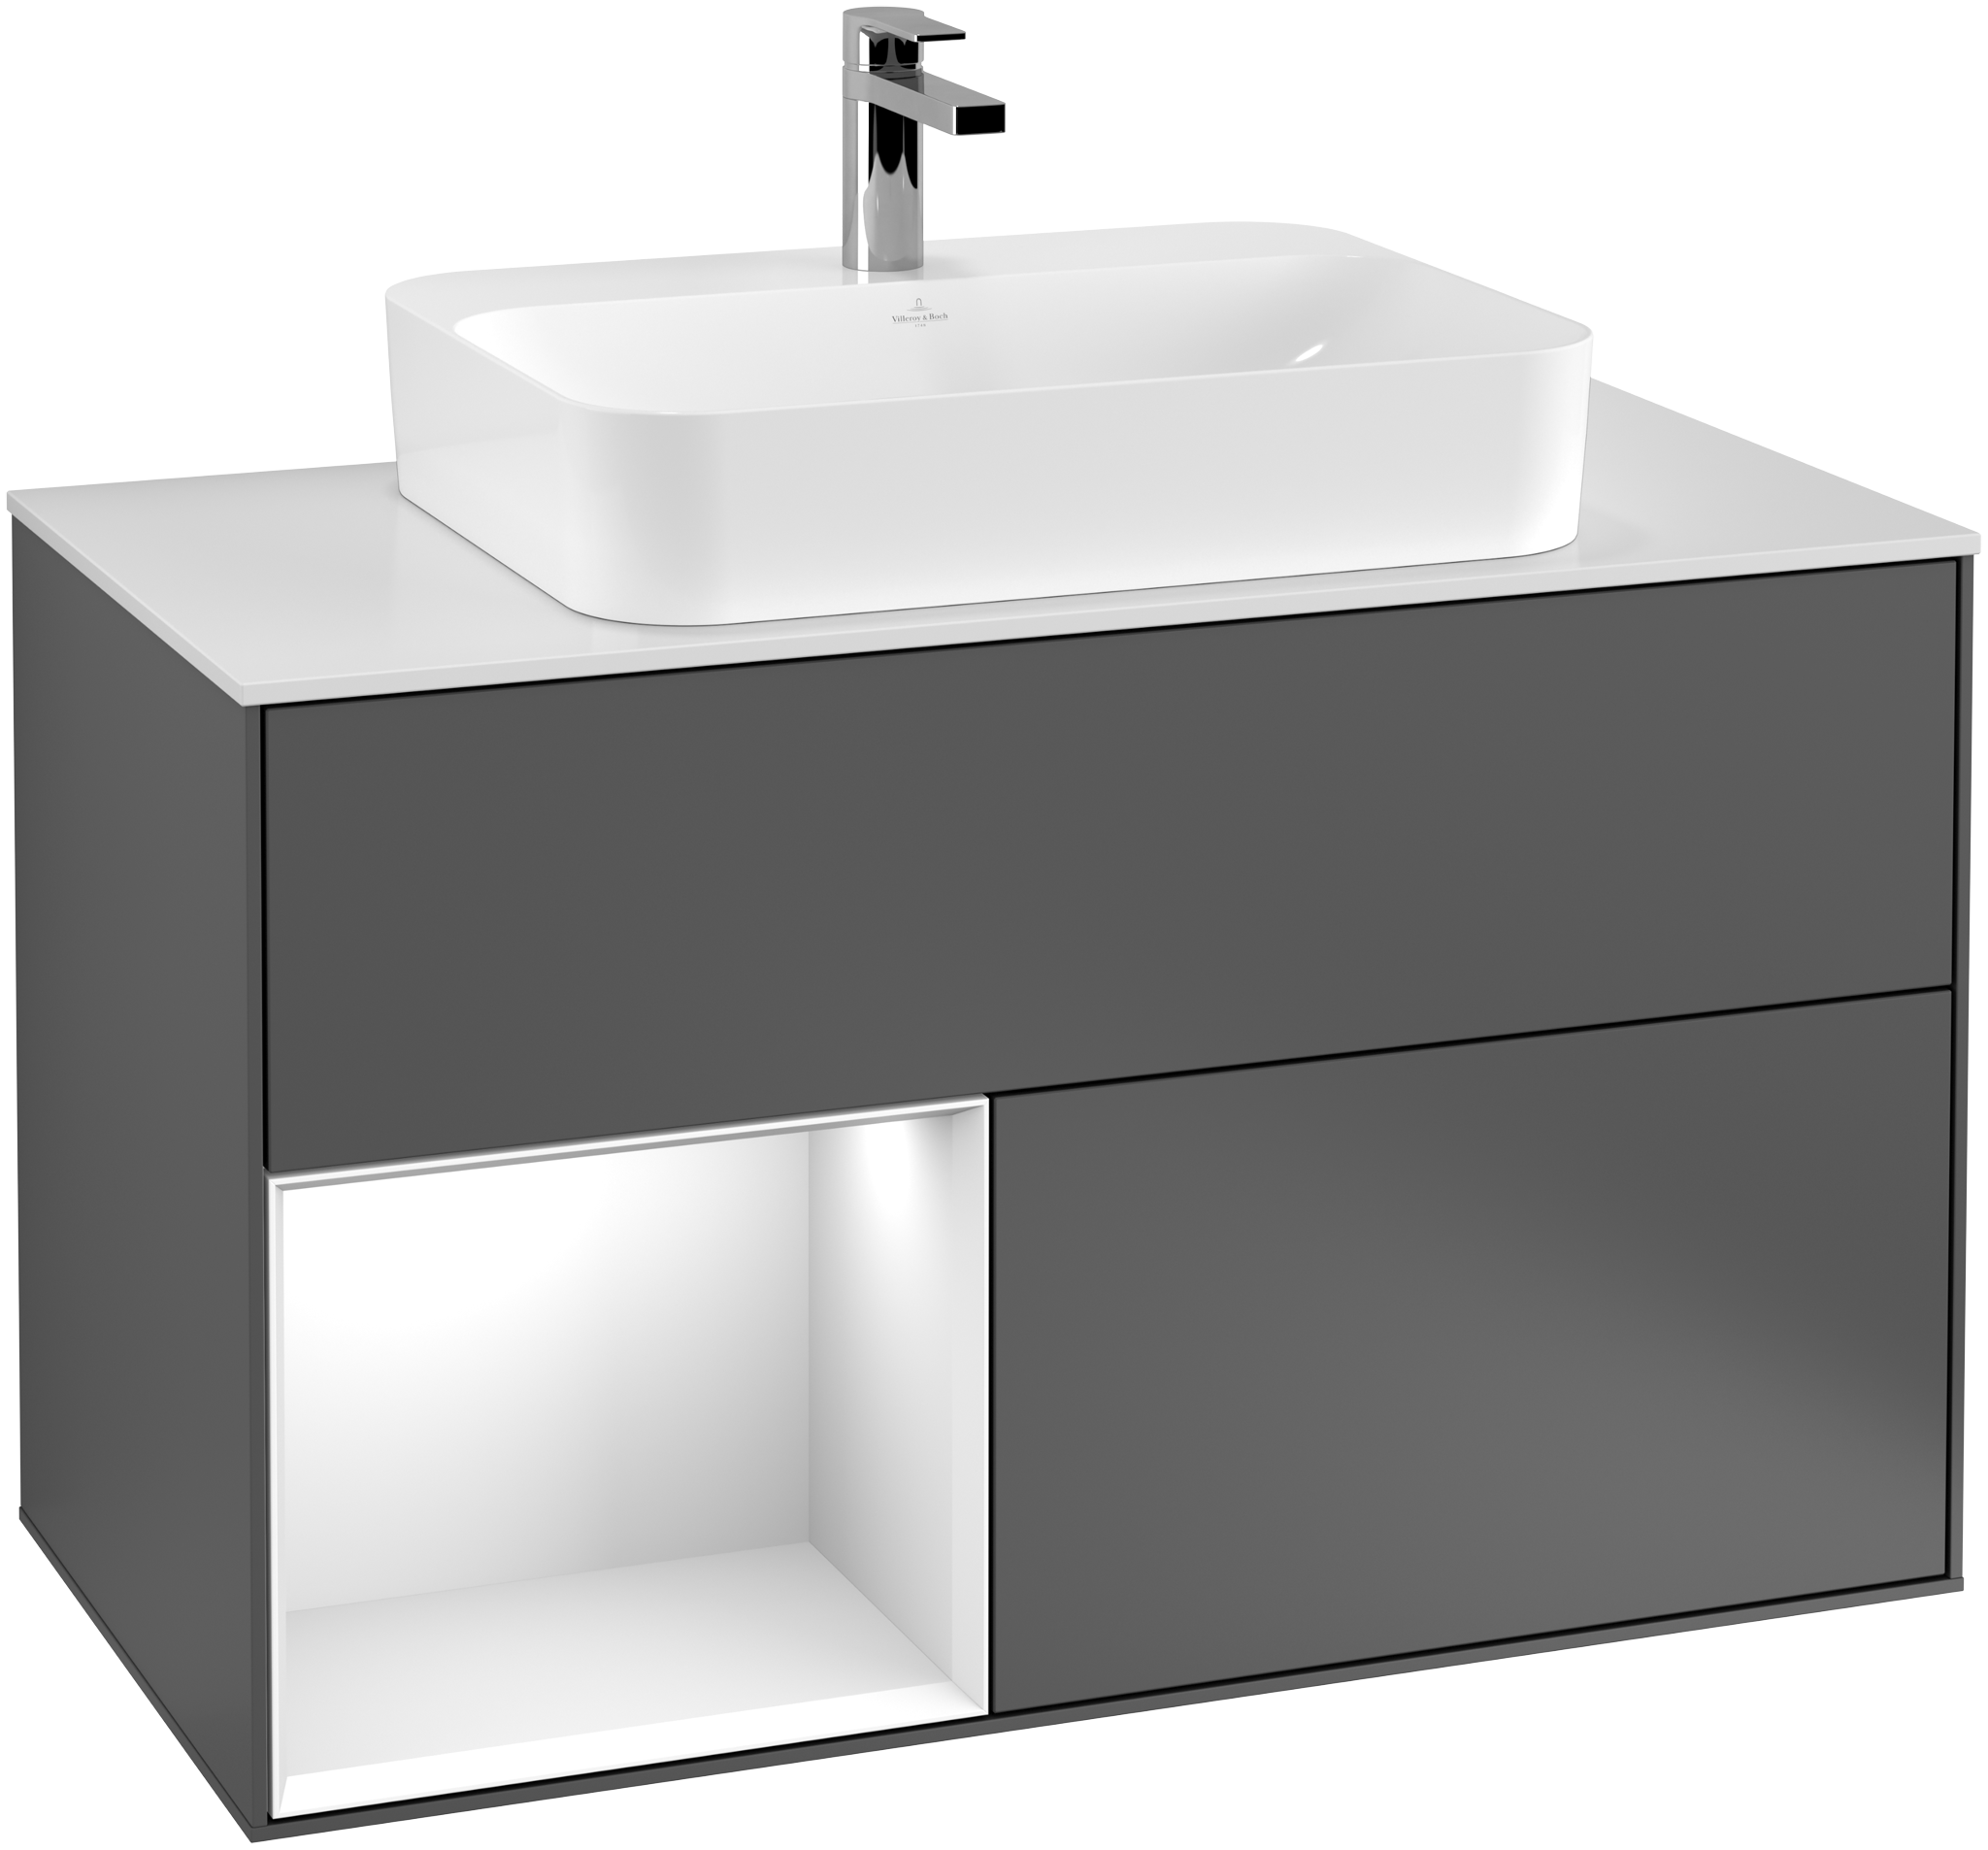 finion bathroom furniture vanity unit for washbasin bathroom sink cabinets